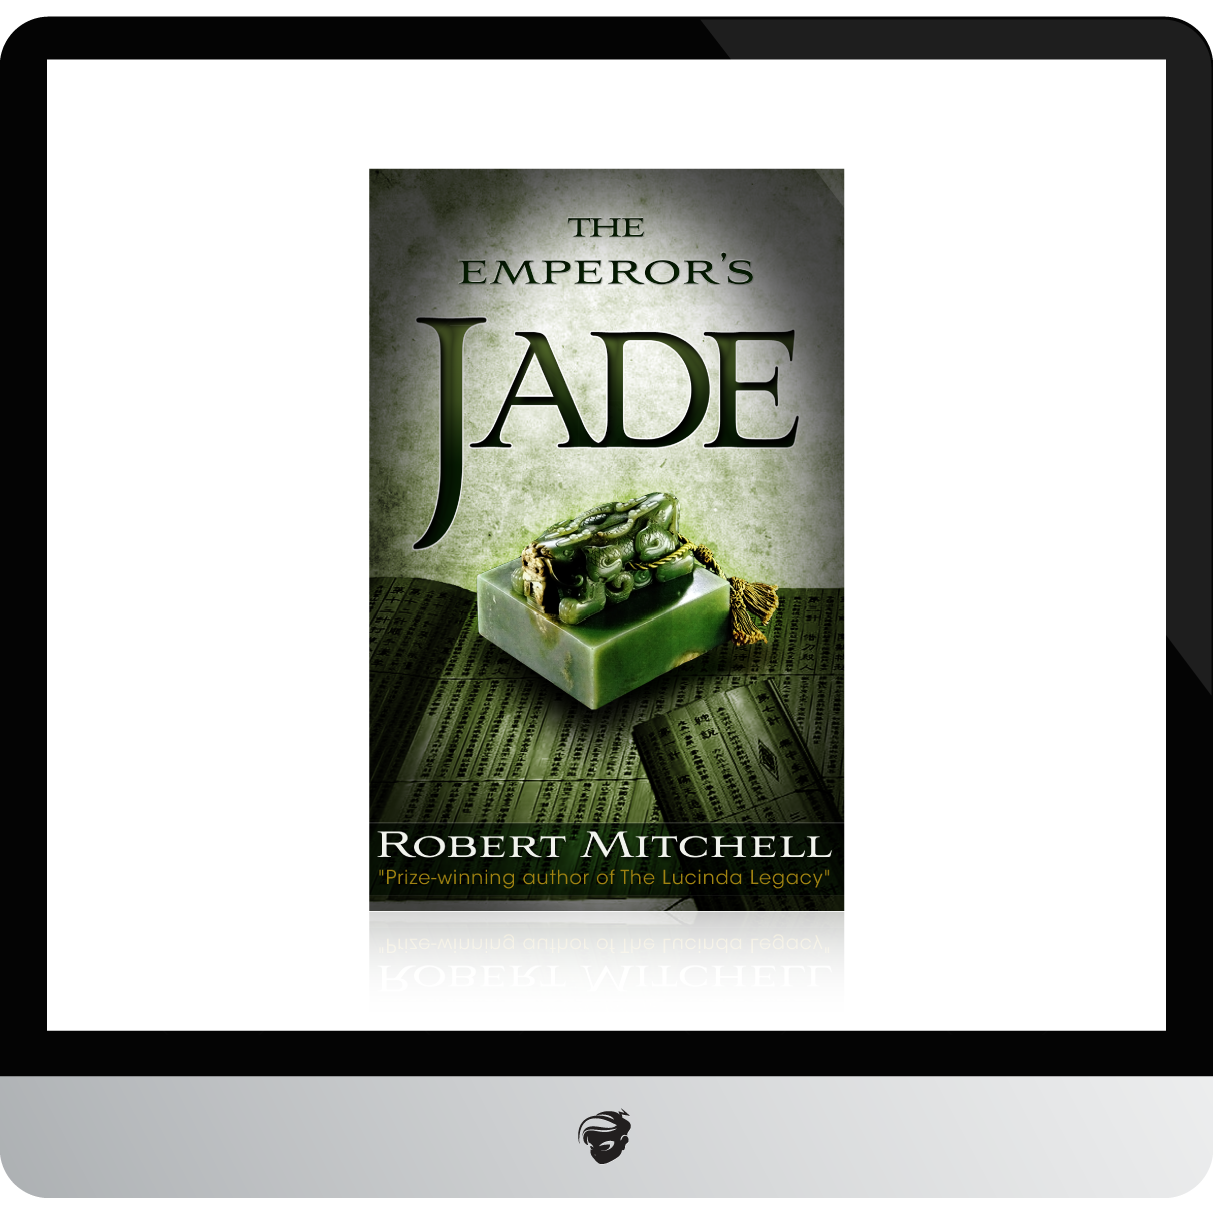 Book Cover Design by zesthar - Entry No. 83 in the Book Cover Design Contest Book Cover Design for The Emperor's Jade.